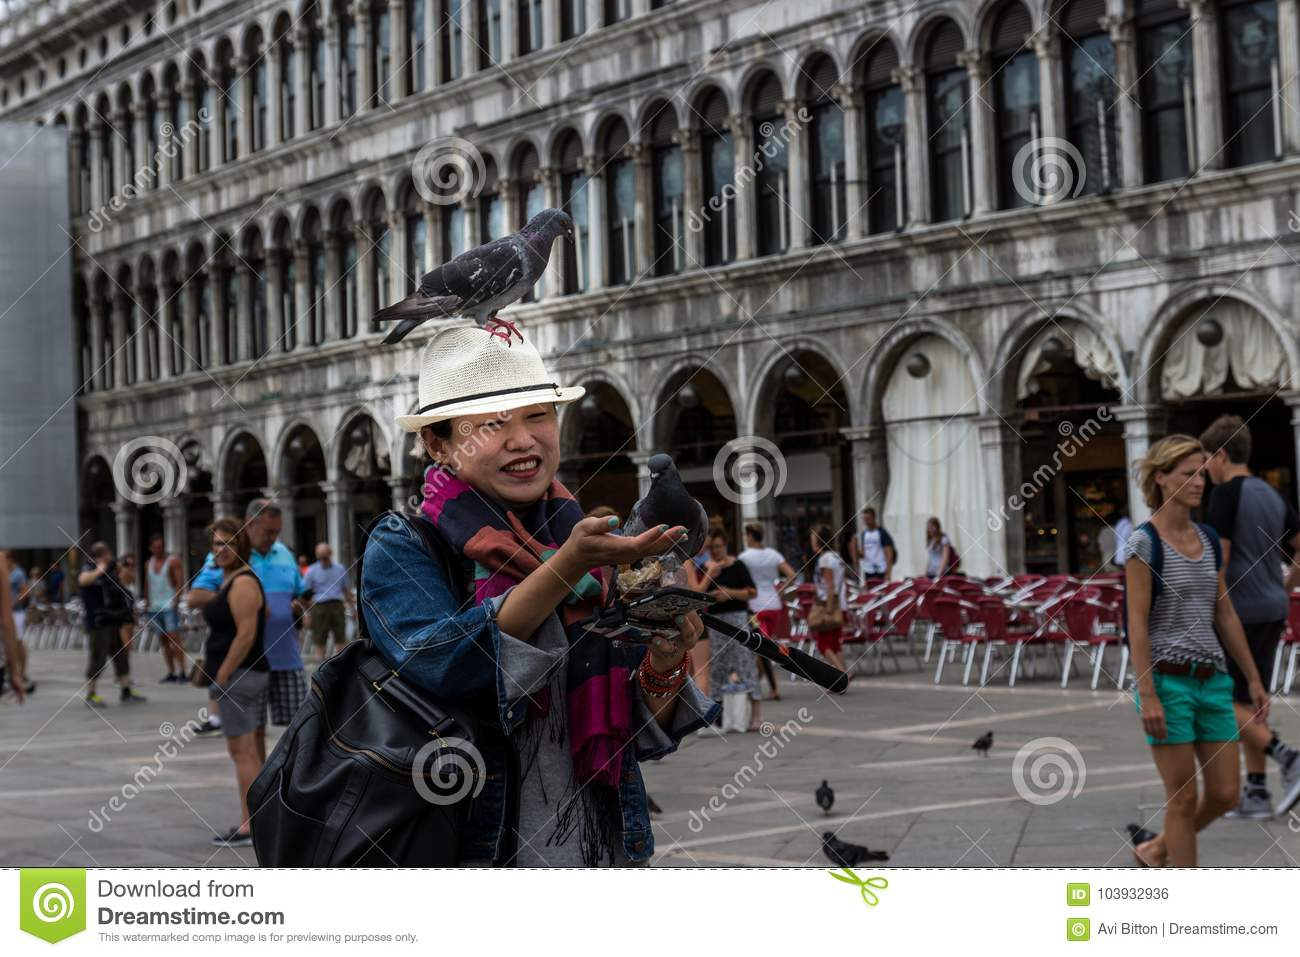 27 of June, St. Marks Square, Venice, Italy: Some pigeons are sitting on a Japanese women`s hat, that tried to feed them at he sq